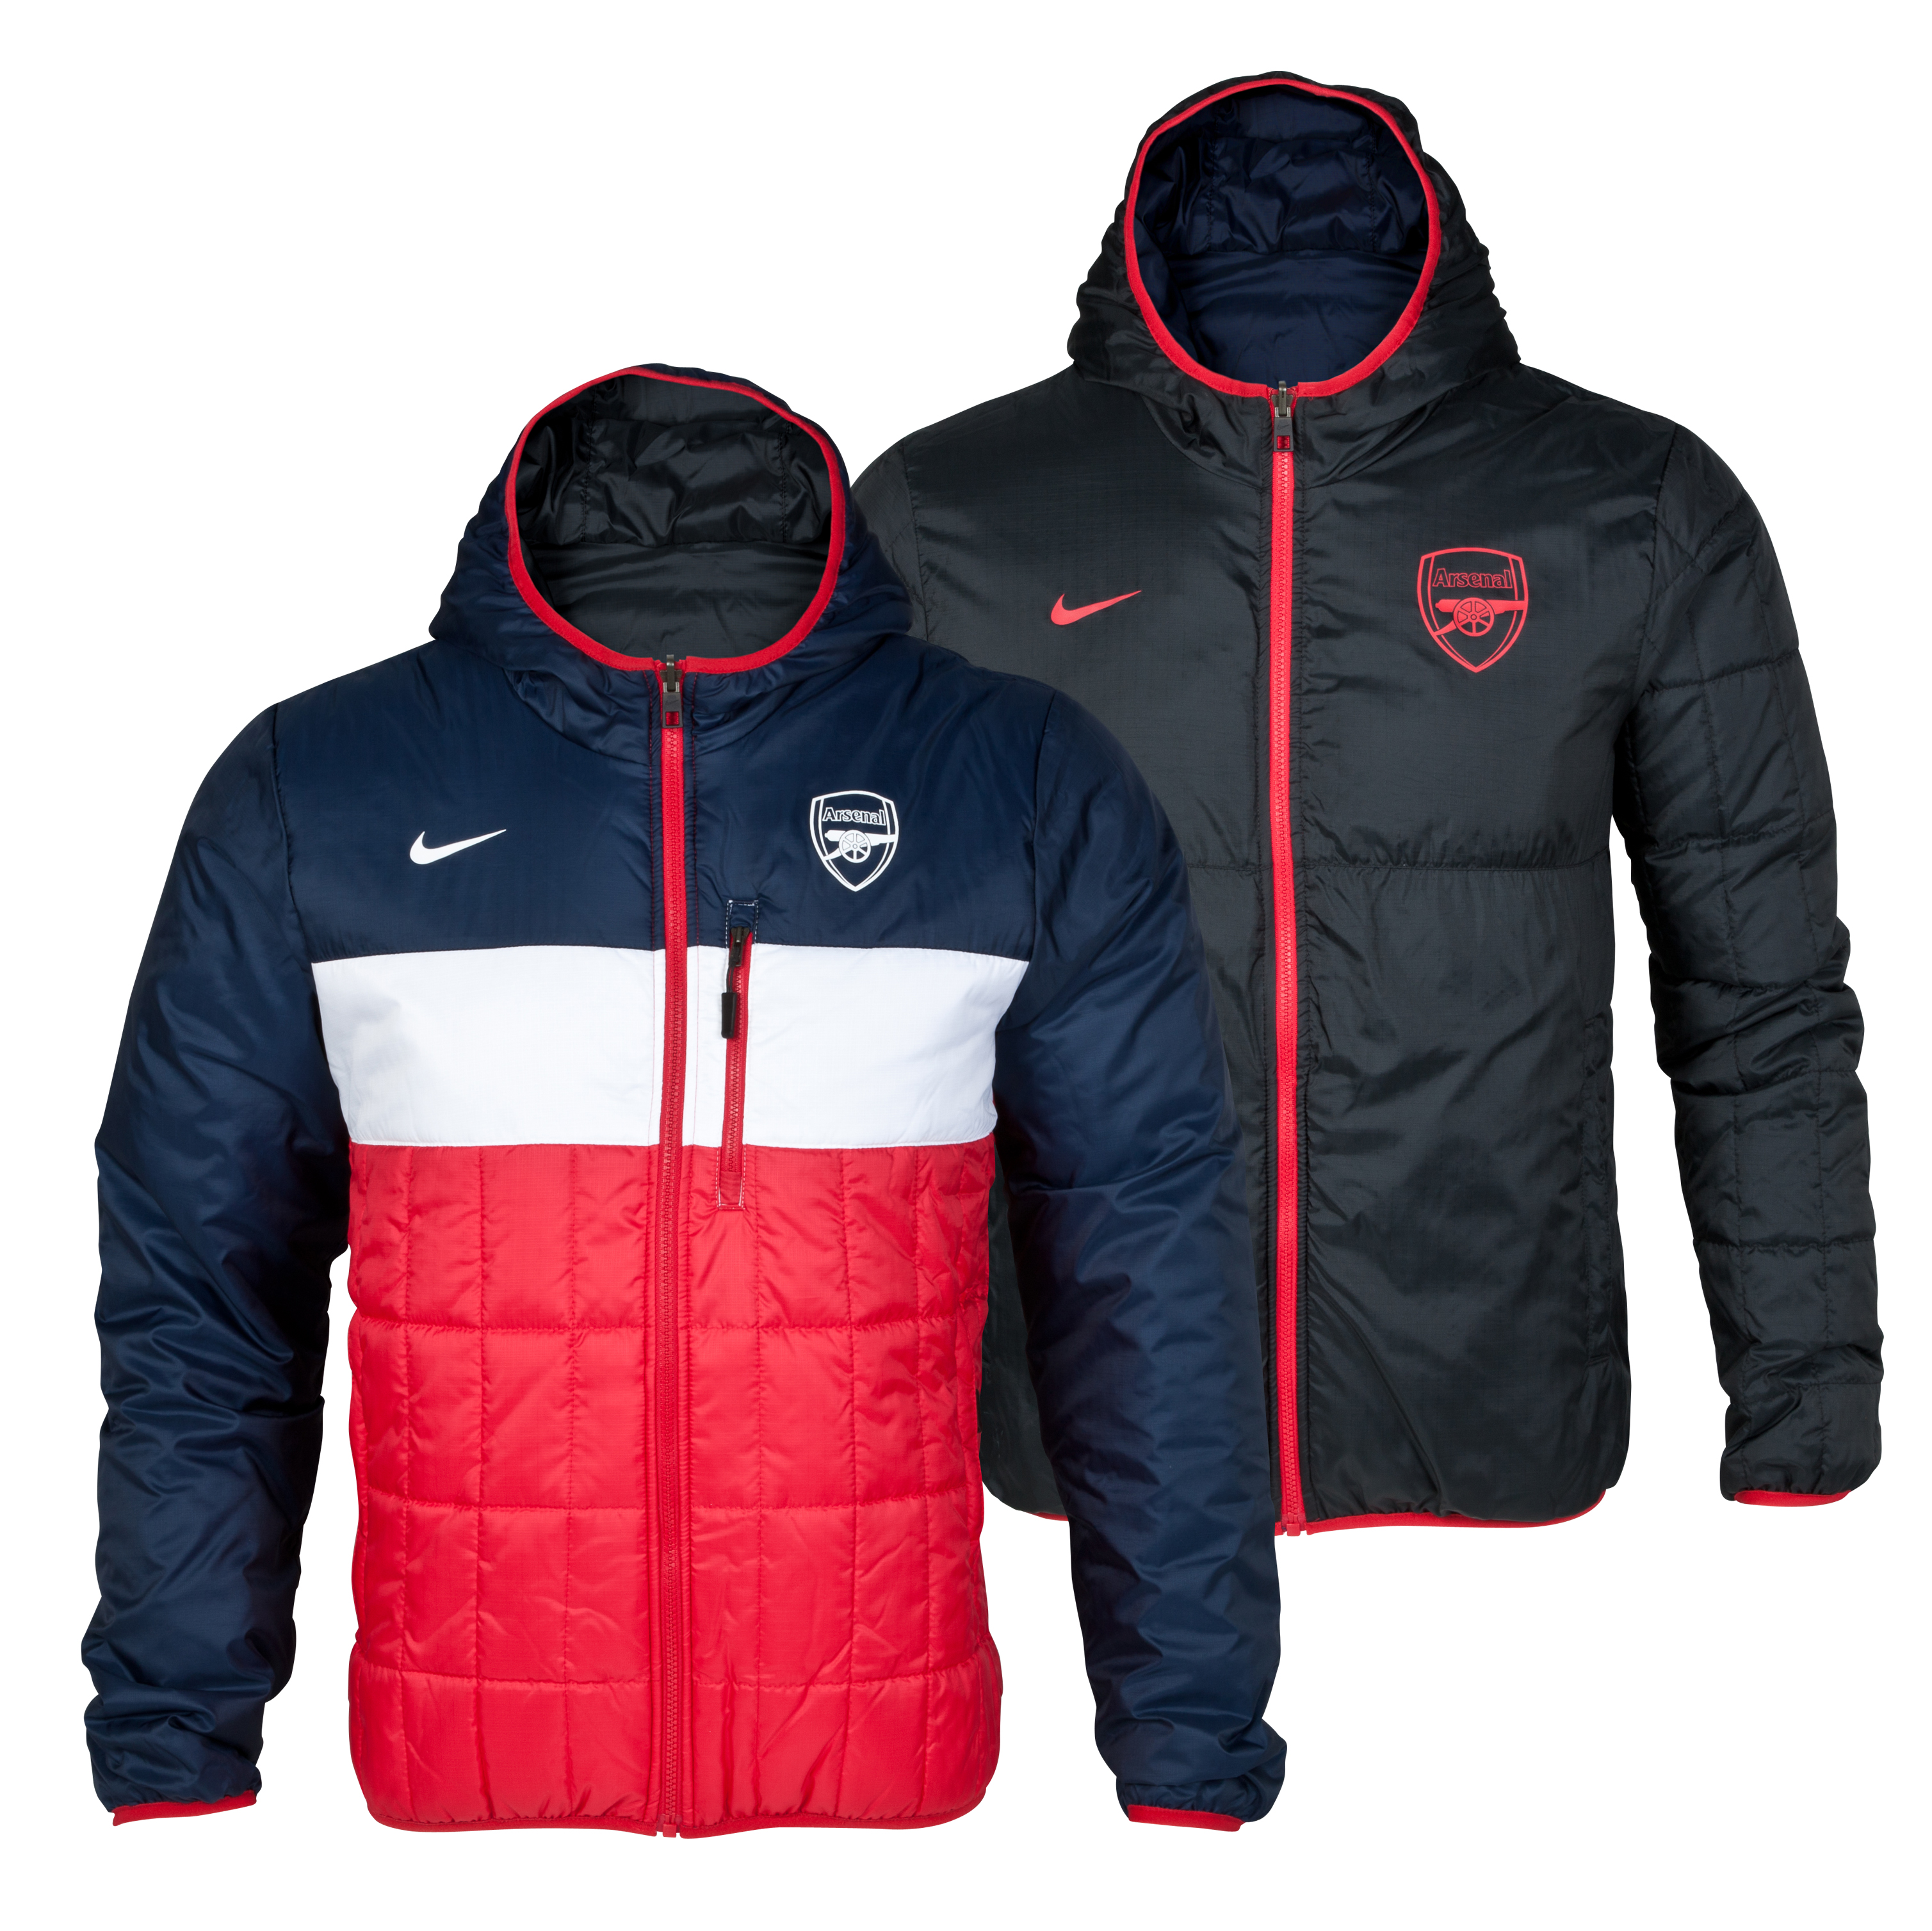 Arsenal Flip It Reversible Jacket - Artillery Red/Obsidian/White/White